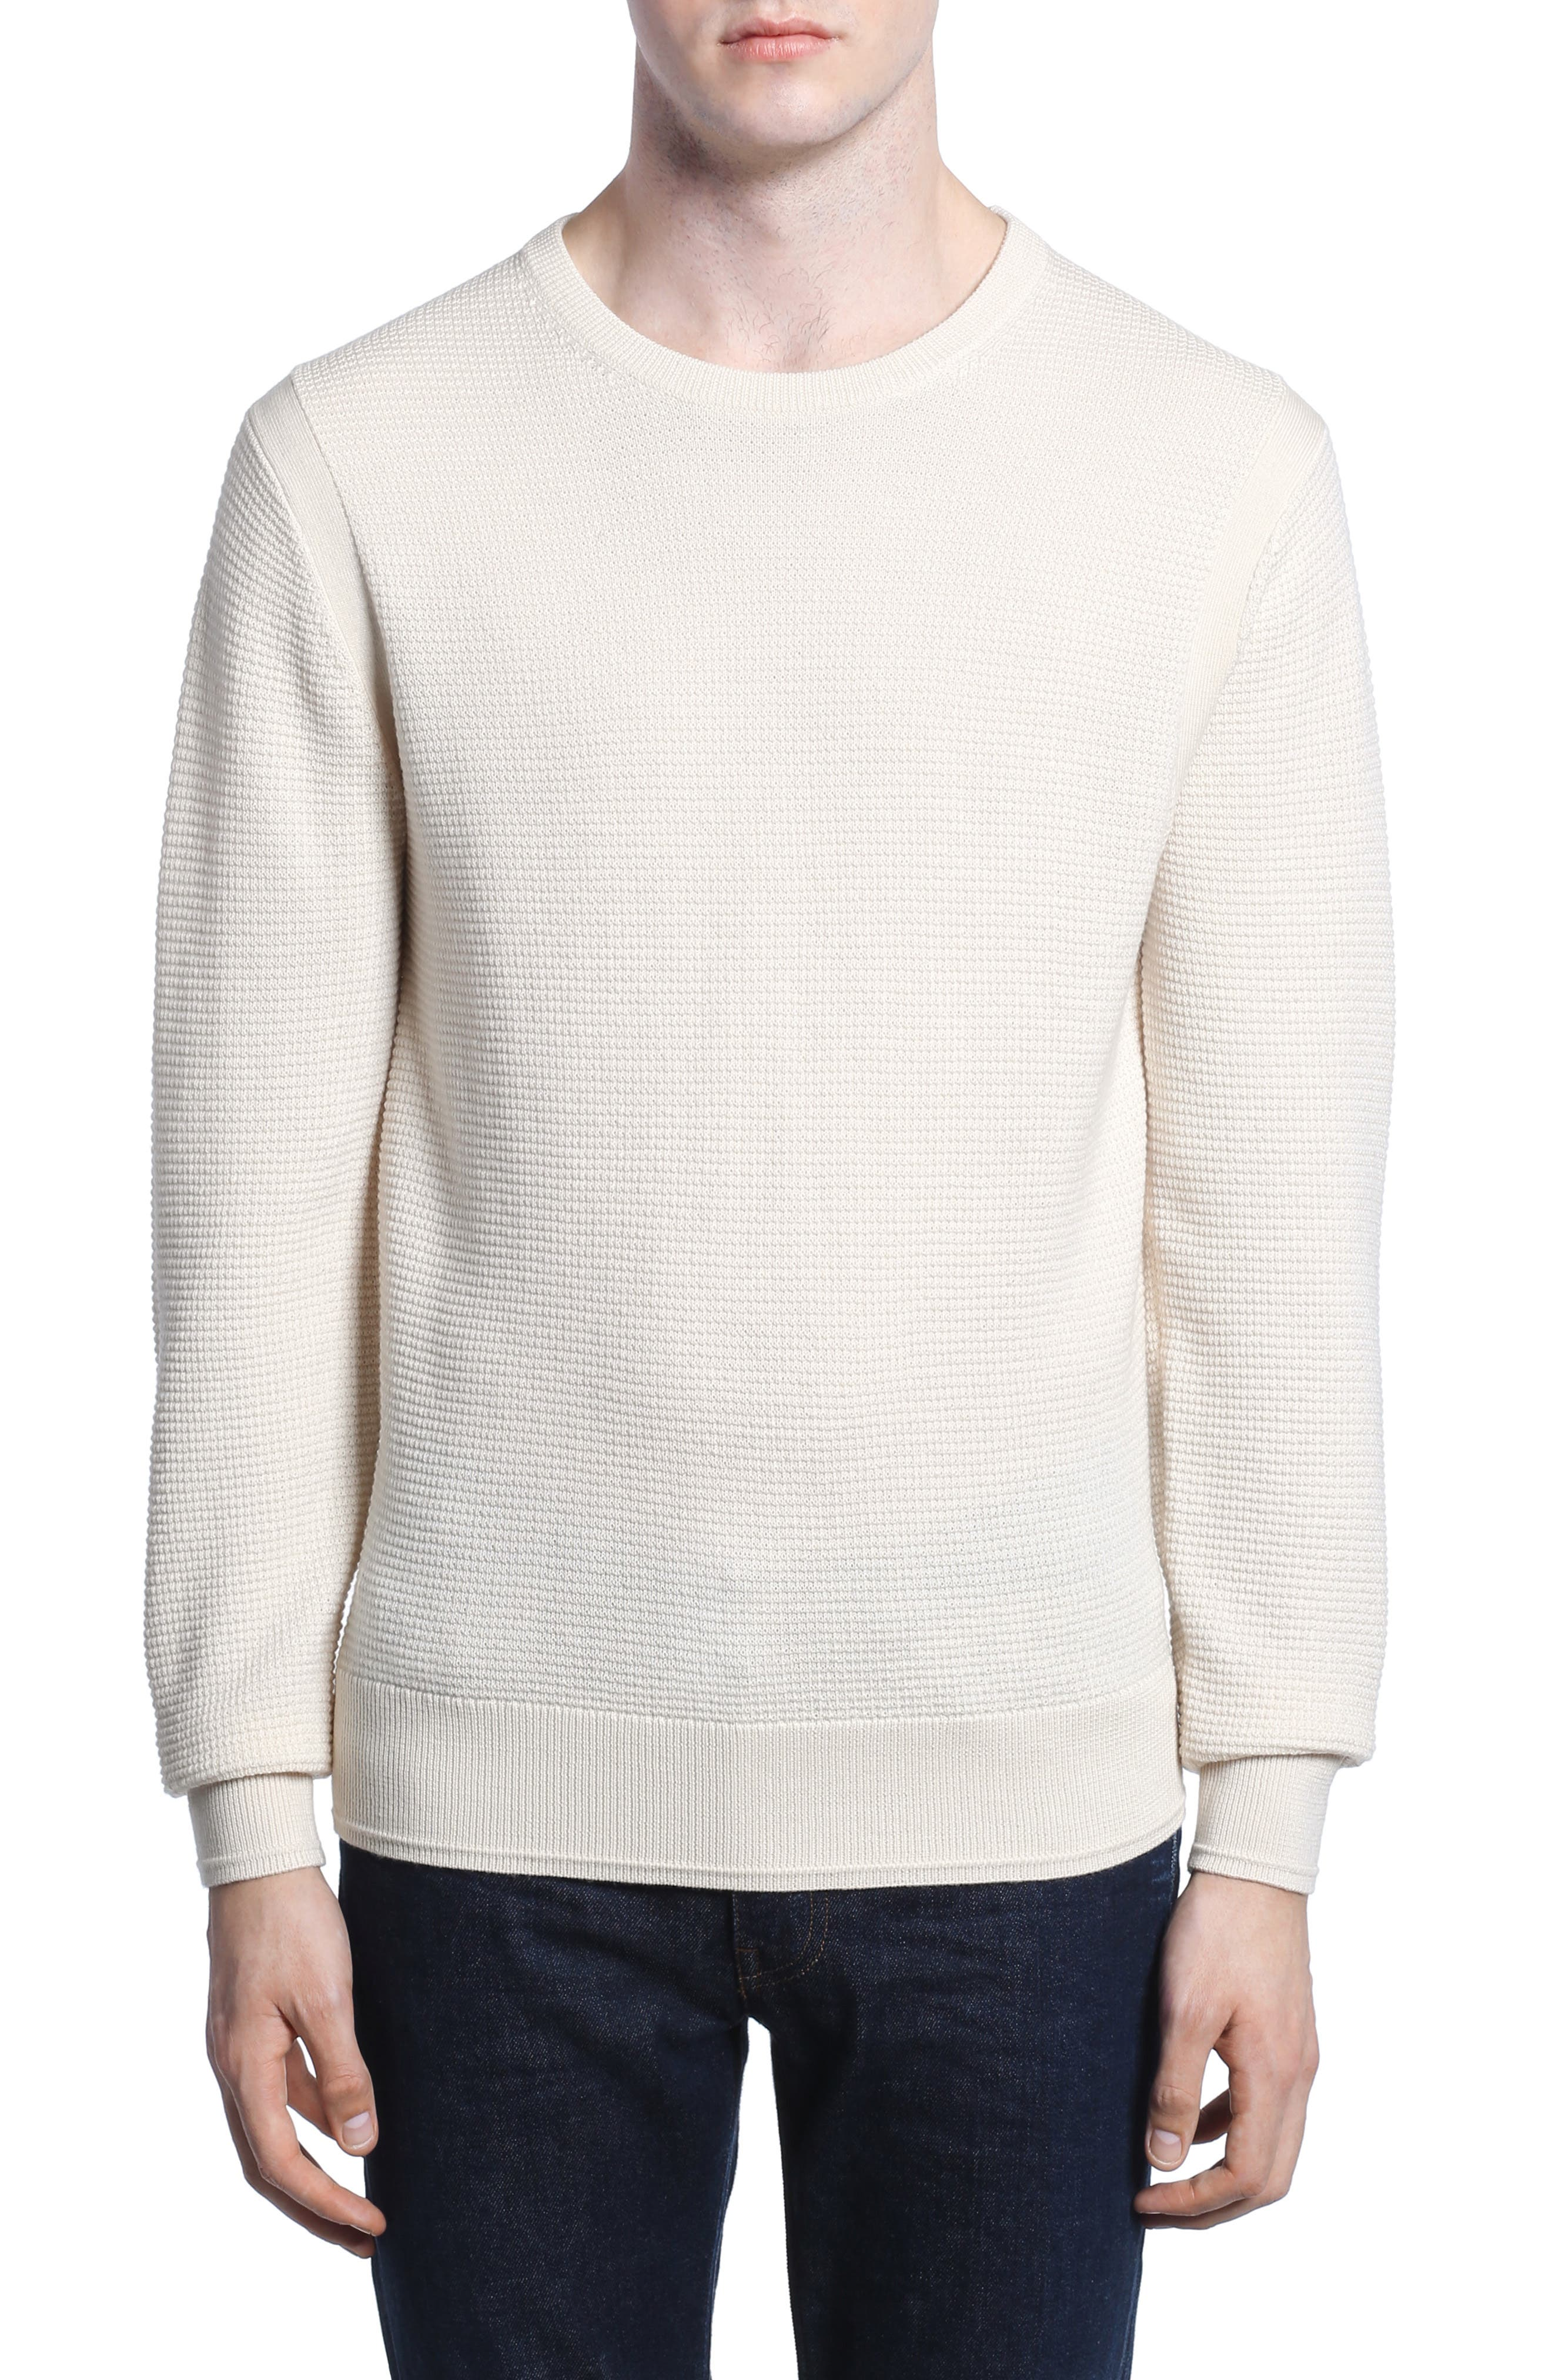 Todd Snyder Merino Waffle Knit Wool Sweater